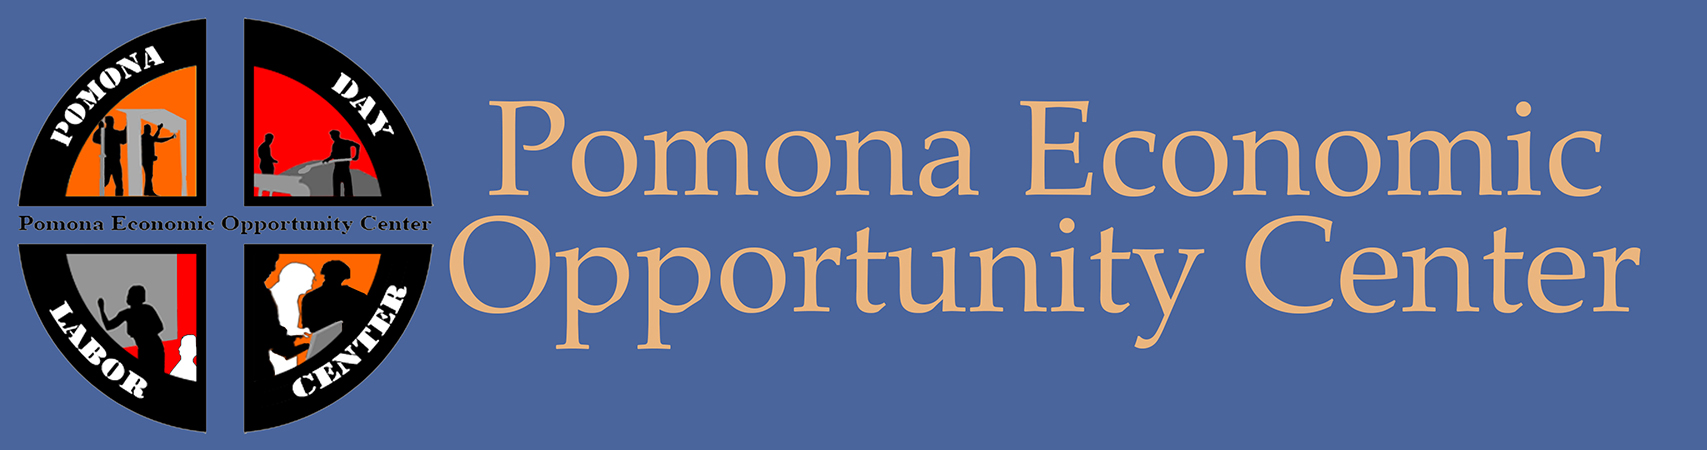 Pomona Economic Opportunity Center